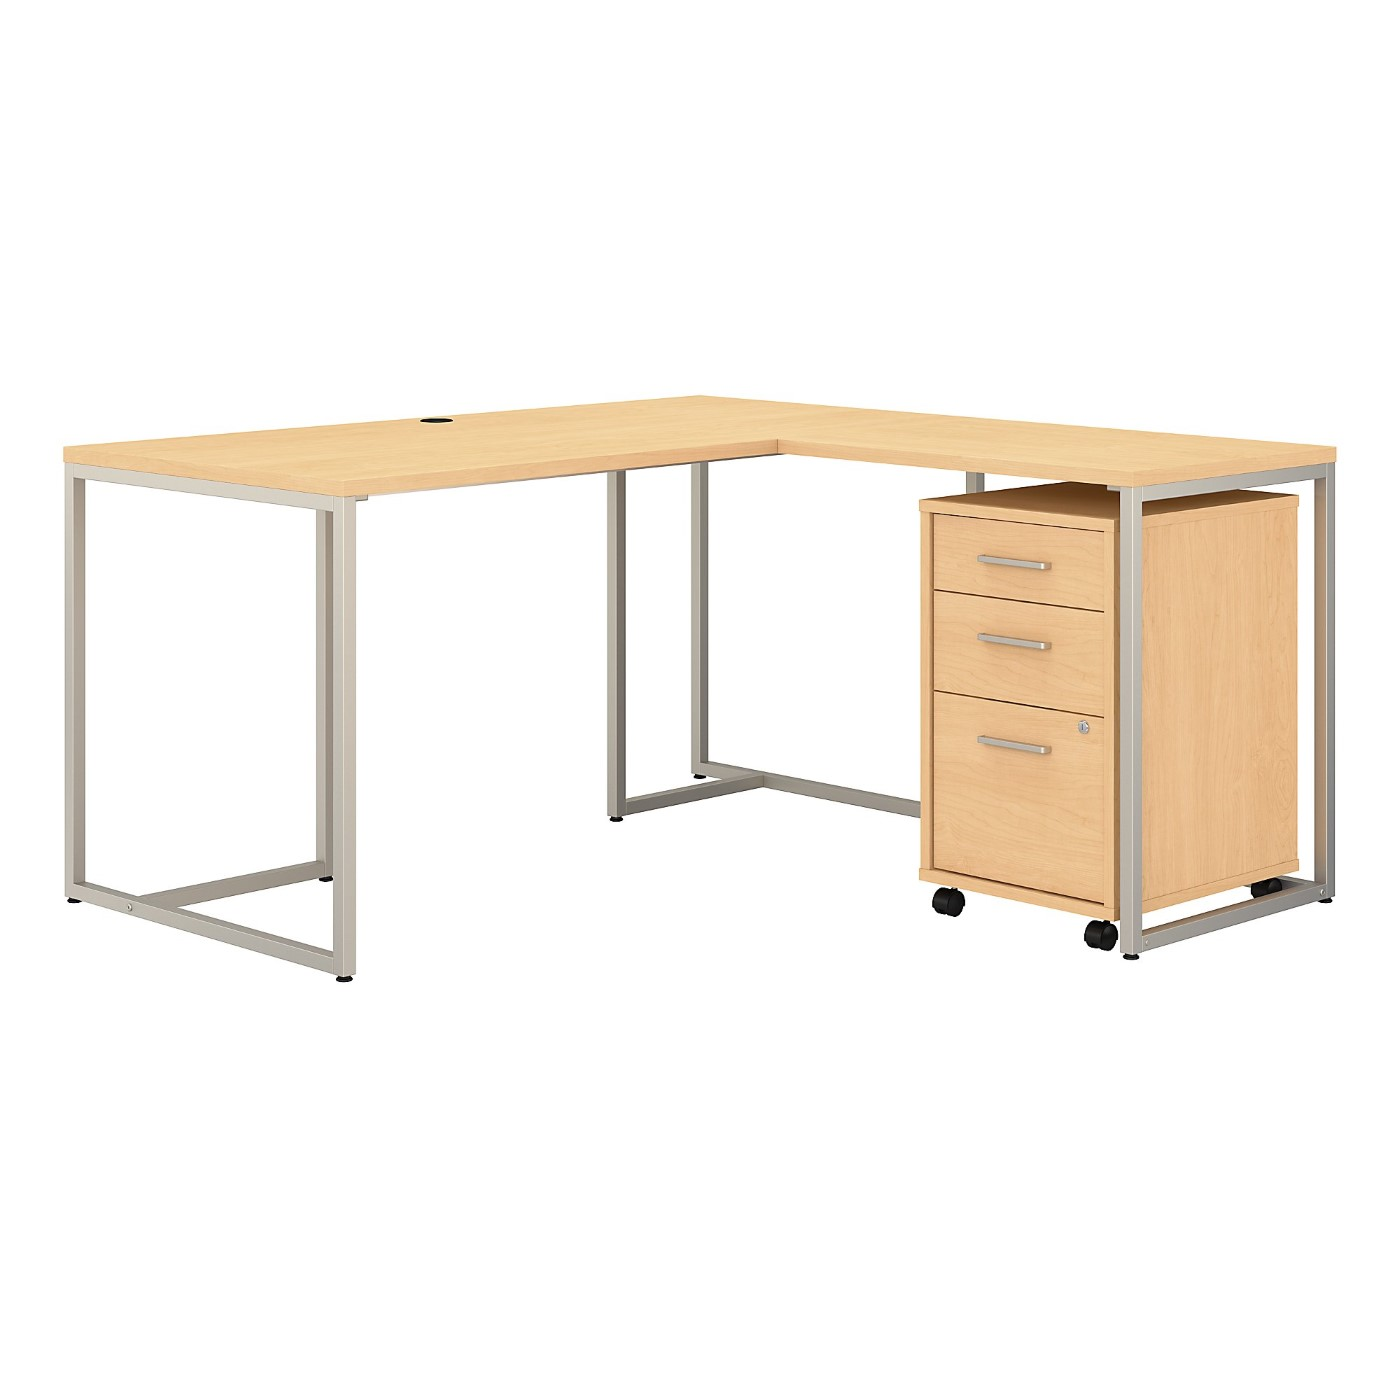 OFFICE BY KATHY IRELAND® METHOD 60W L SHAPED DESK WITH 30W RETURN AND MOBILE FILE CABINET. FREE SHIPPING SALE DEDUCT 10% MORE ENTER '10percent' IN COUPON CODE BOX WHILE CHECKING OUT.